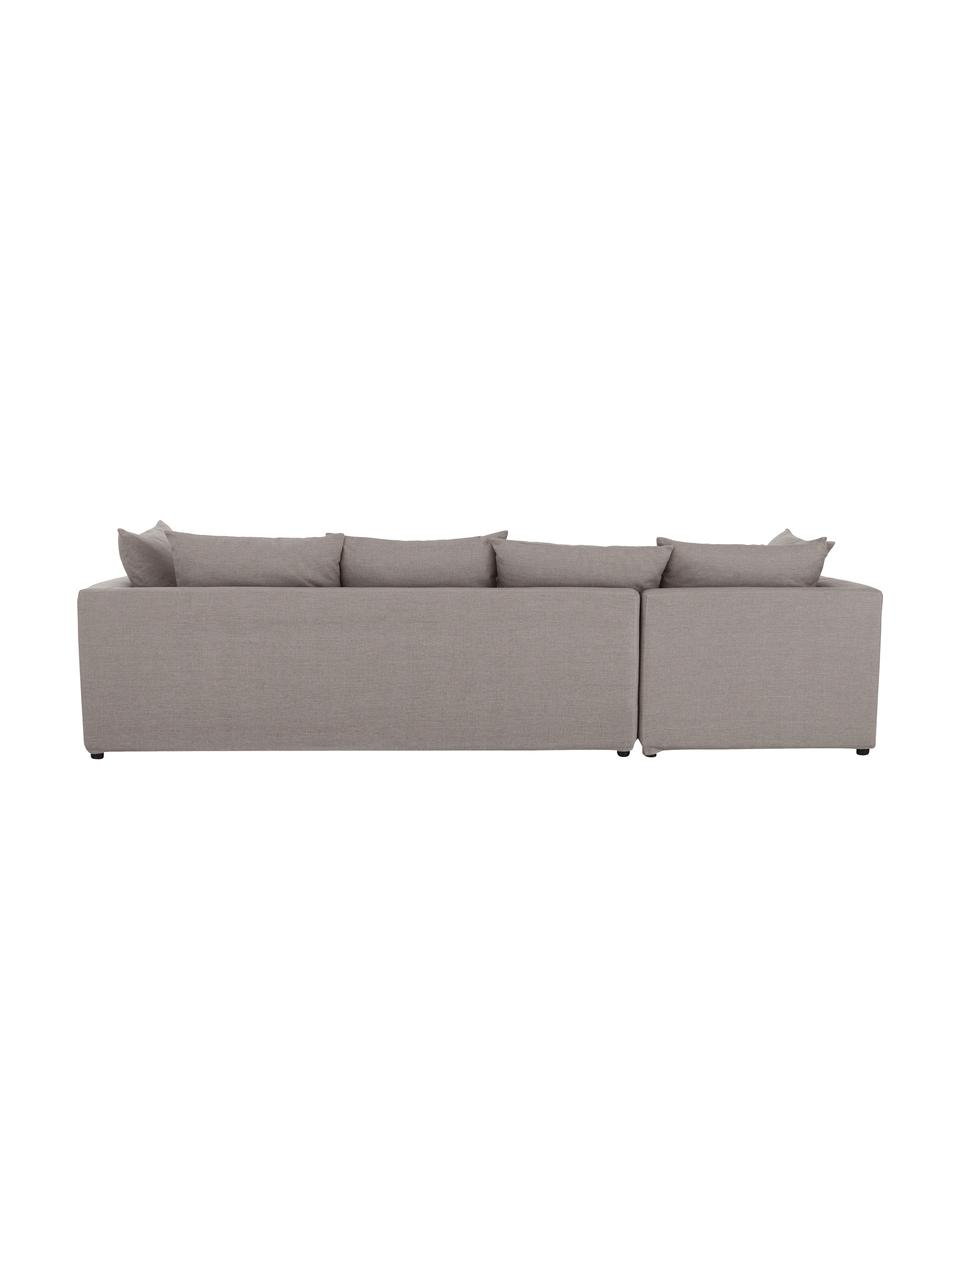 Grand canapé d'angle taupe Zach, Tissu taupe